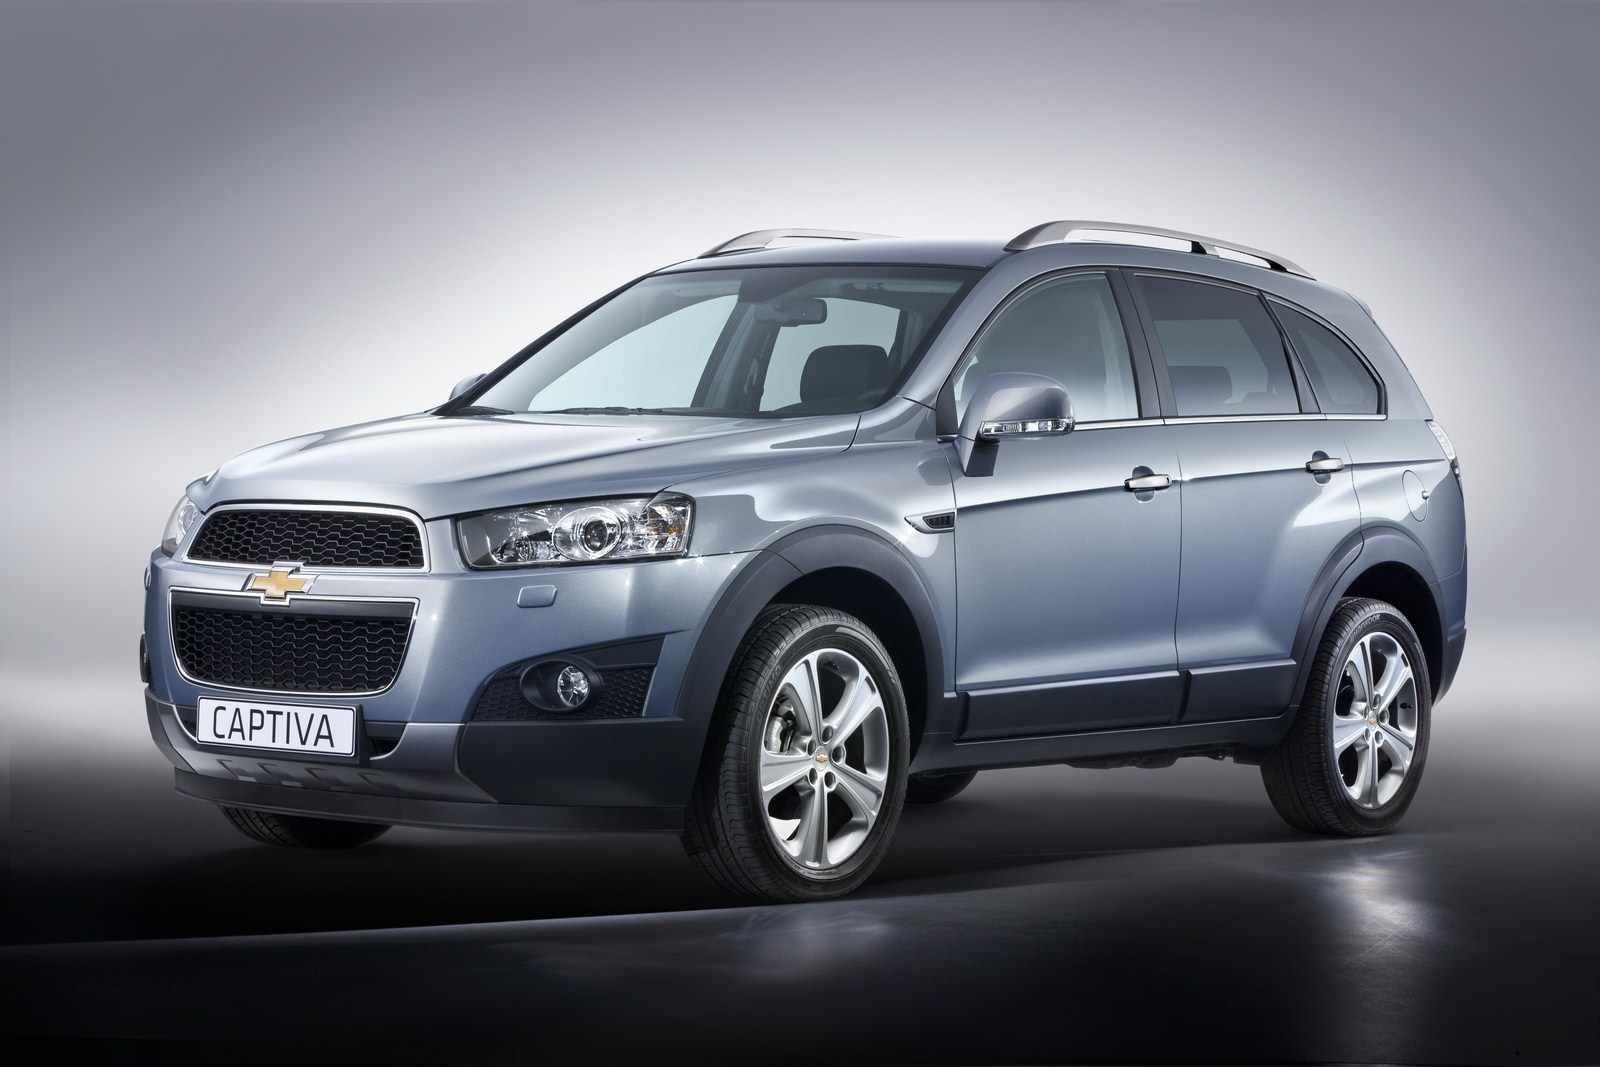 Chevrolet Captiva Cars Prices, Wallpaper, Specs Review